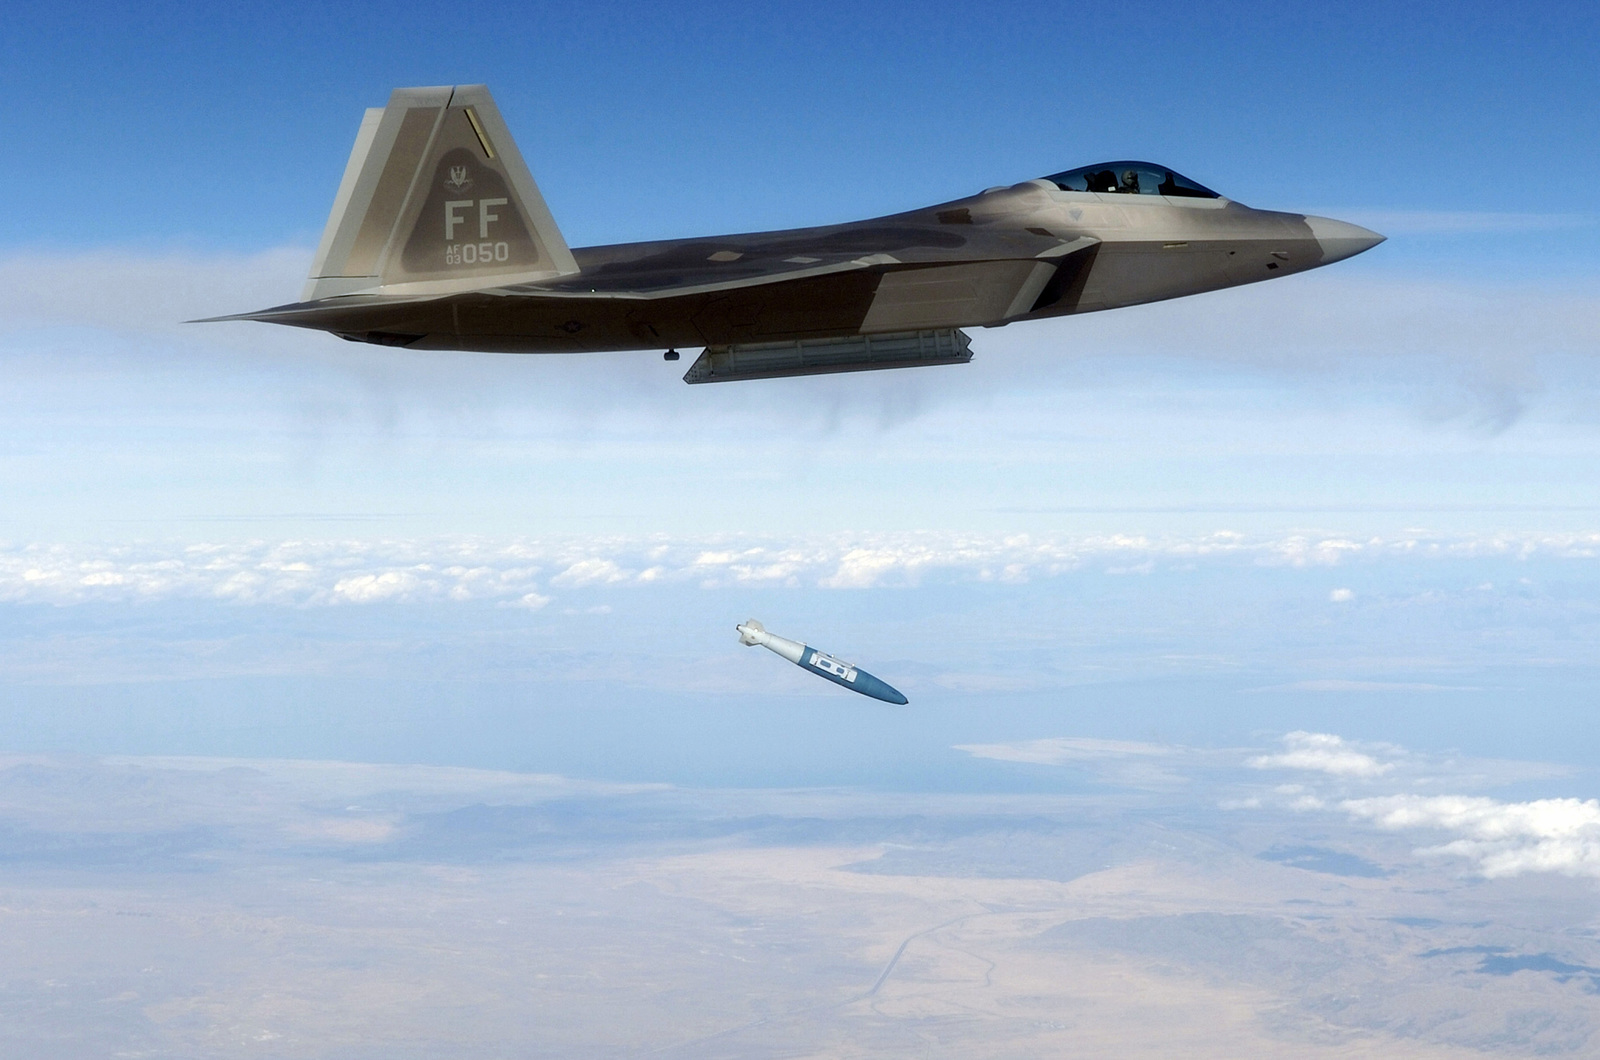 U.S. Air Force LT. COL. Wade Tolliver, Pilot, F/A-22 Raptor, and Director of Operations, 27th Fighter Squadron, Langley Air Force Base, Va., releases a 1,000 lb. GBU-32 Joint Direct Attack Munition (JDAM) over the Utah Test and Training Range, Hill Air Force Base, Oct. 20, 2005, during the Combat Hammer Air-to-Ground Weapons System Evaluation Program hosted by the 86th Fighter Weapons Squadron, Elgin Air Force Base, Fla. (U.S. Air Force photo by MASTER SGT. Michael Ammons) (Released)